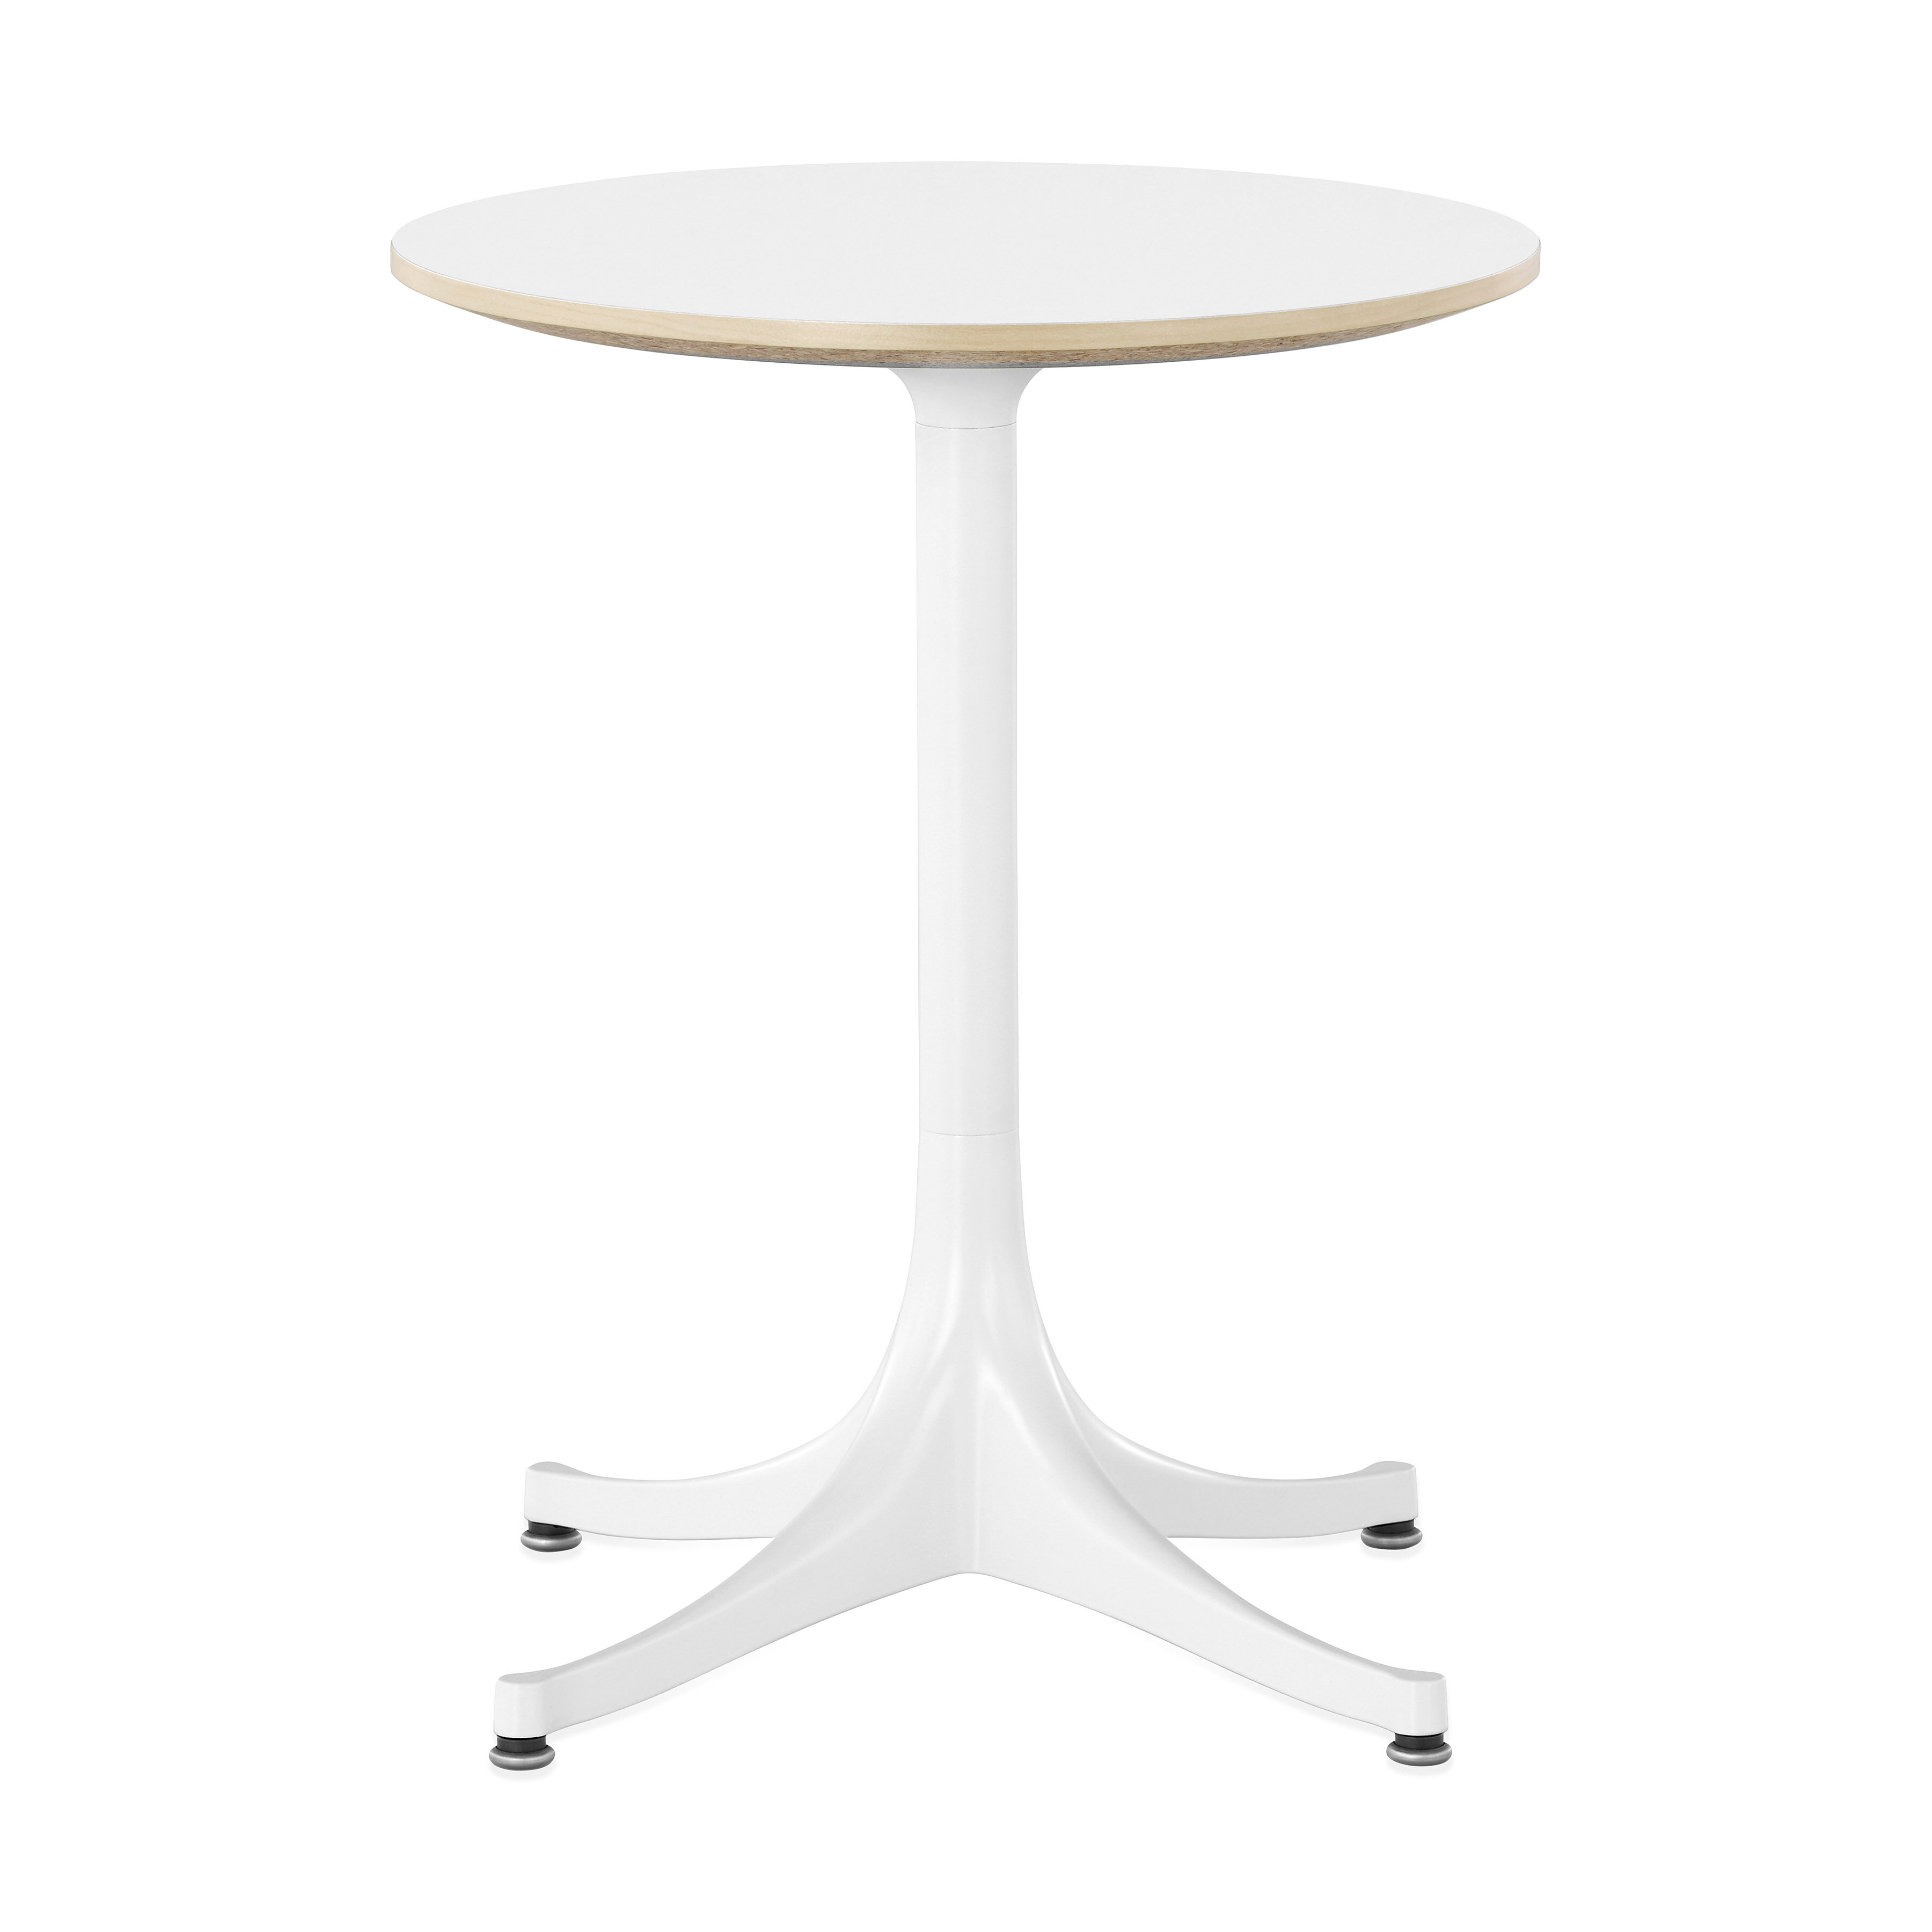 Delicieux George Nelsonu0026trade; Pedestal Side Table In Color White